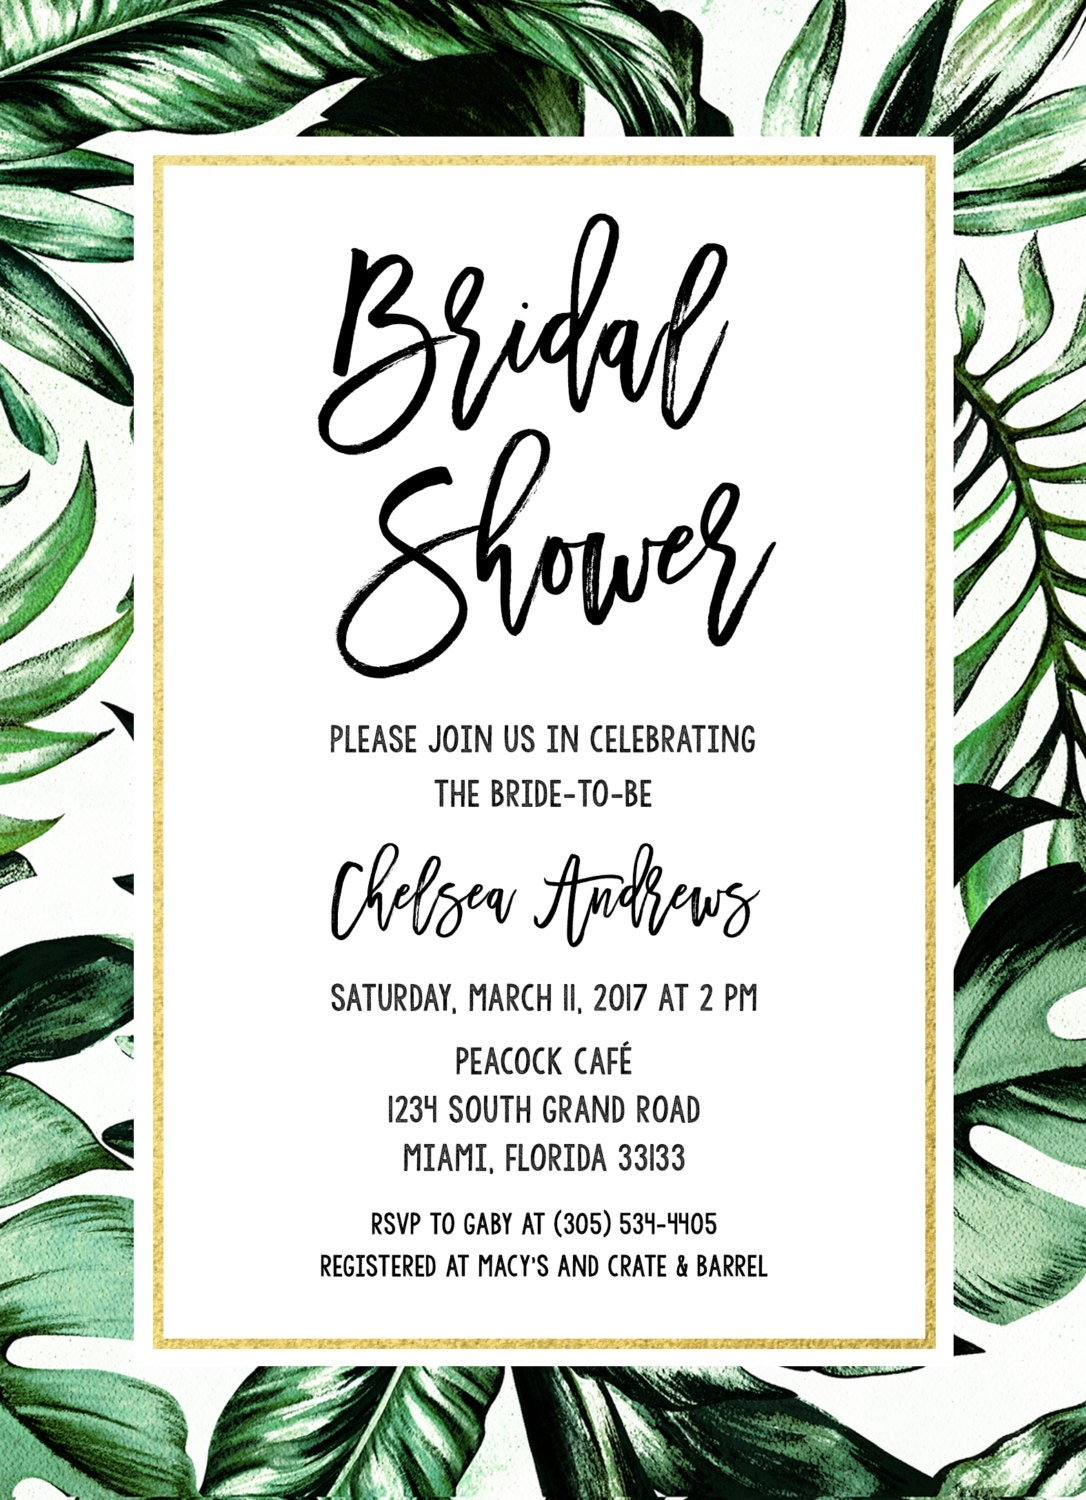 Tropical bridal shower invitation tropical invitation palm tree tropical bridal shower invitation tropical invitation palm tree leaf bridal shower invite tropical wedding printable wedding invitation filmwisefo Image collections